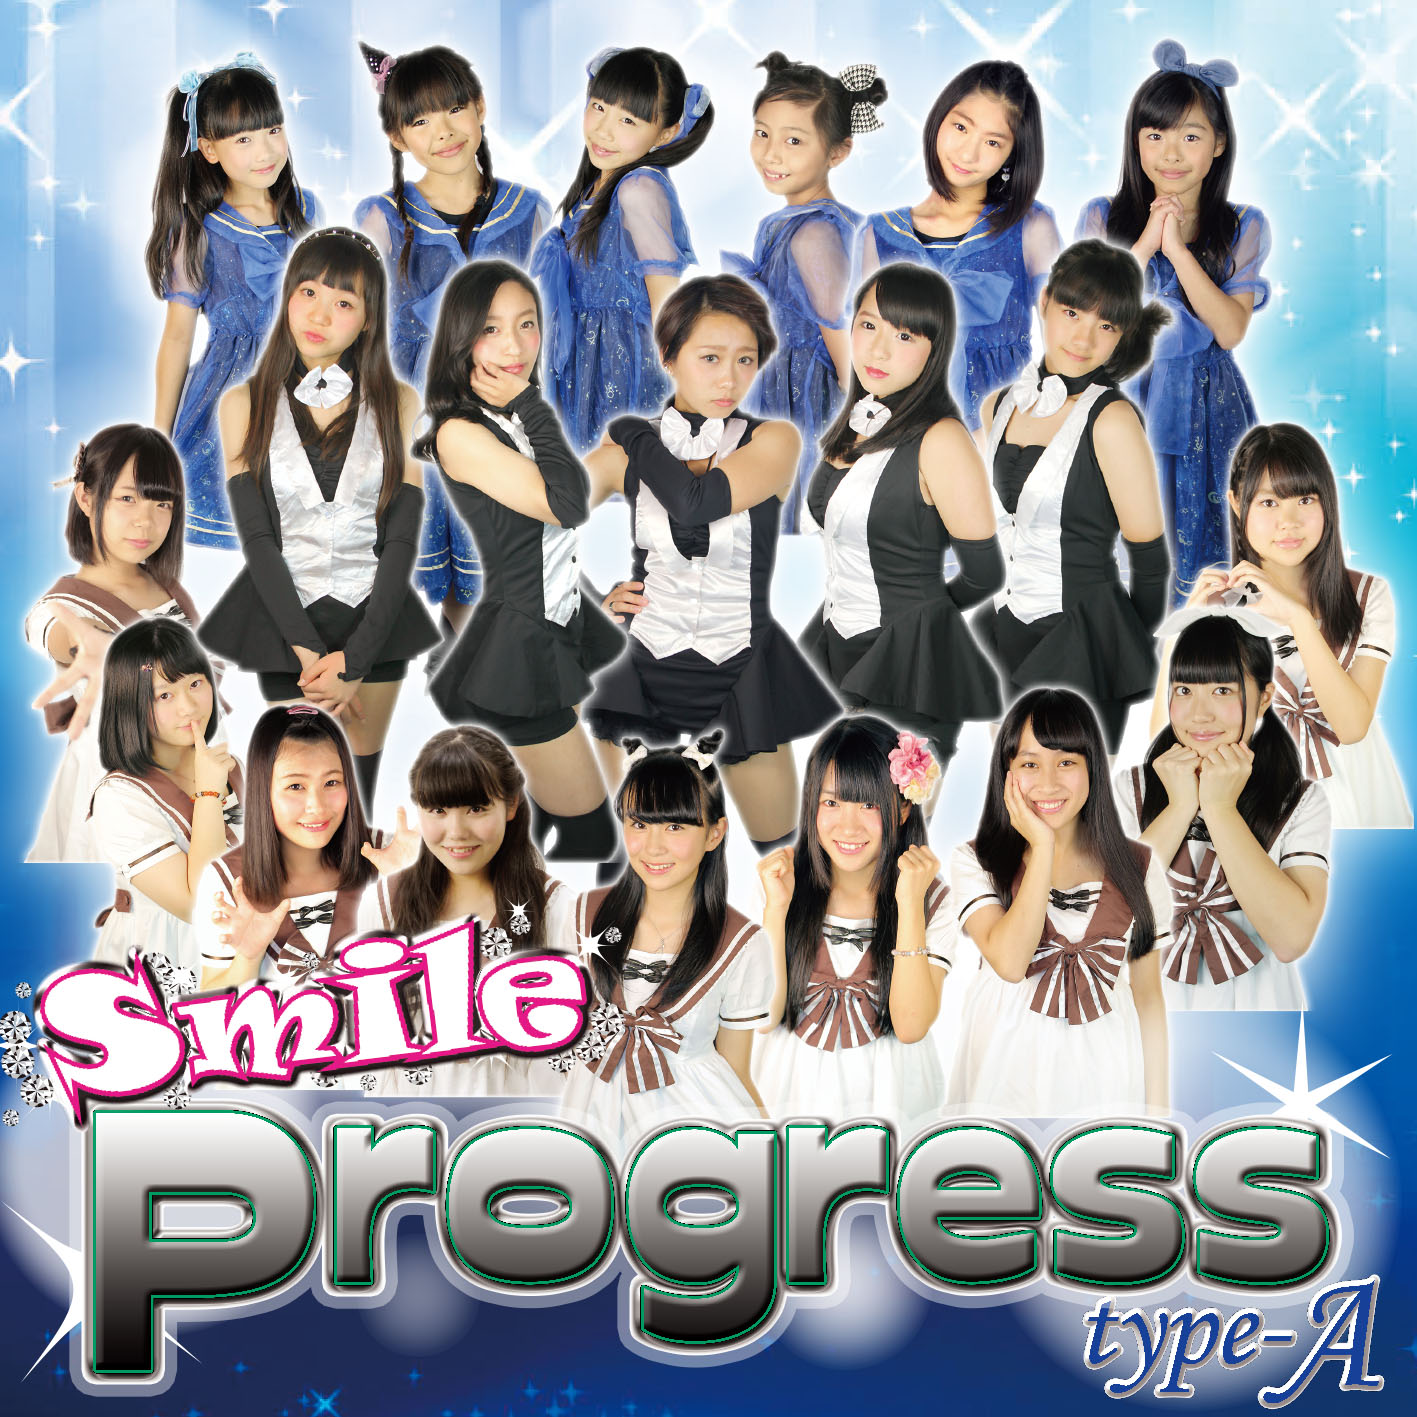 progress type-A